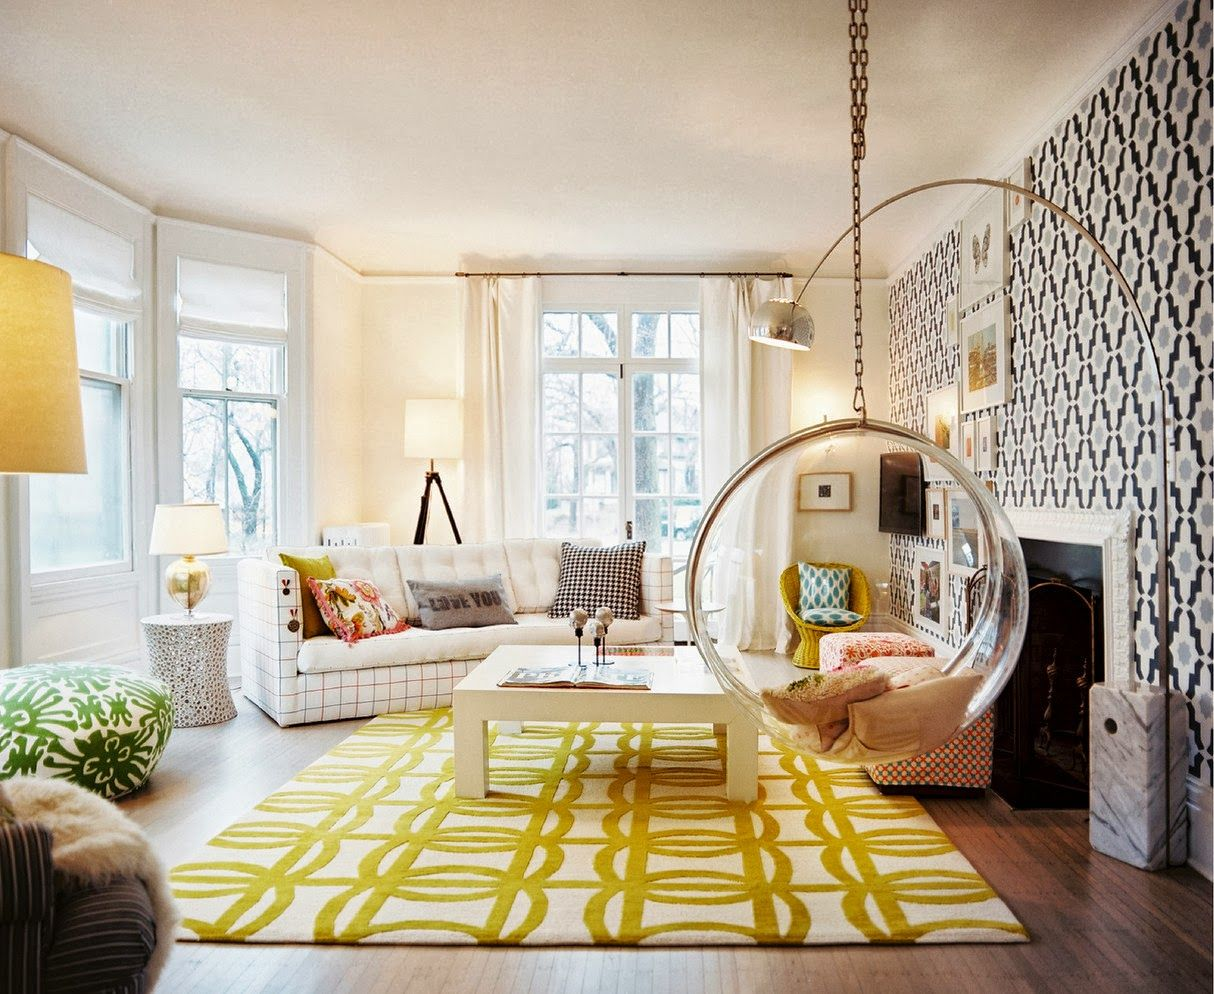 Cool Glass Hanging Chair Feat Yellow Area Rug Idea And Trendy Arc Floor  Lamp On Living